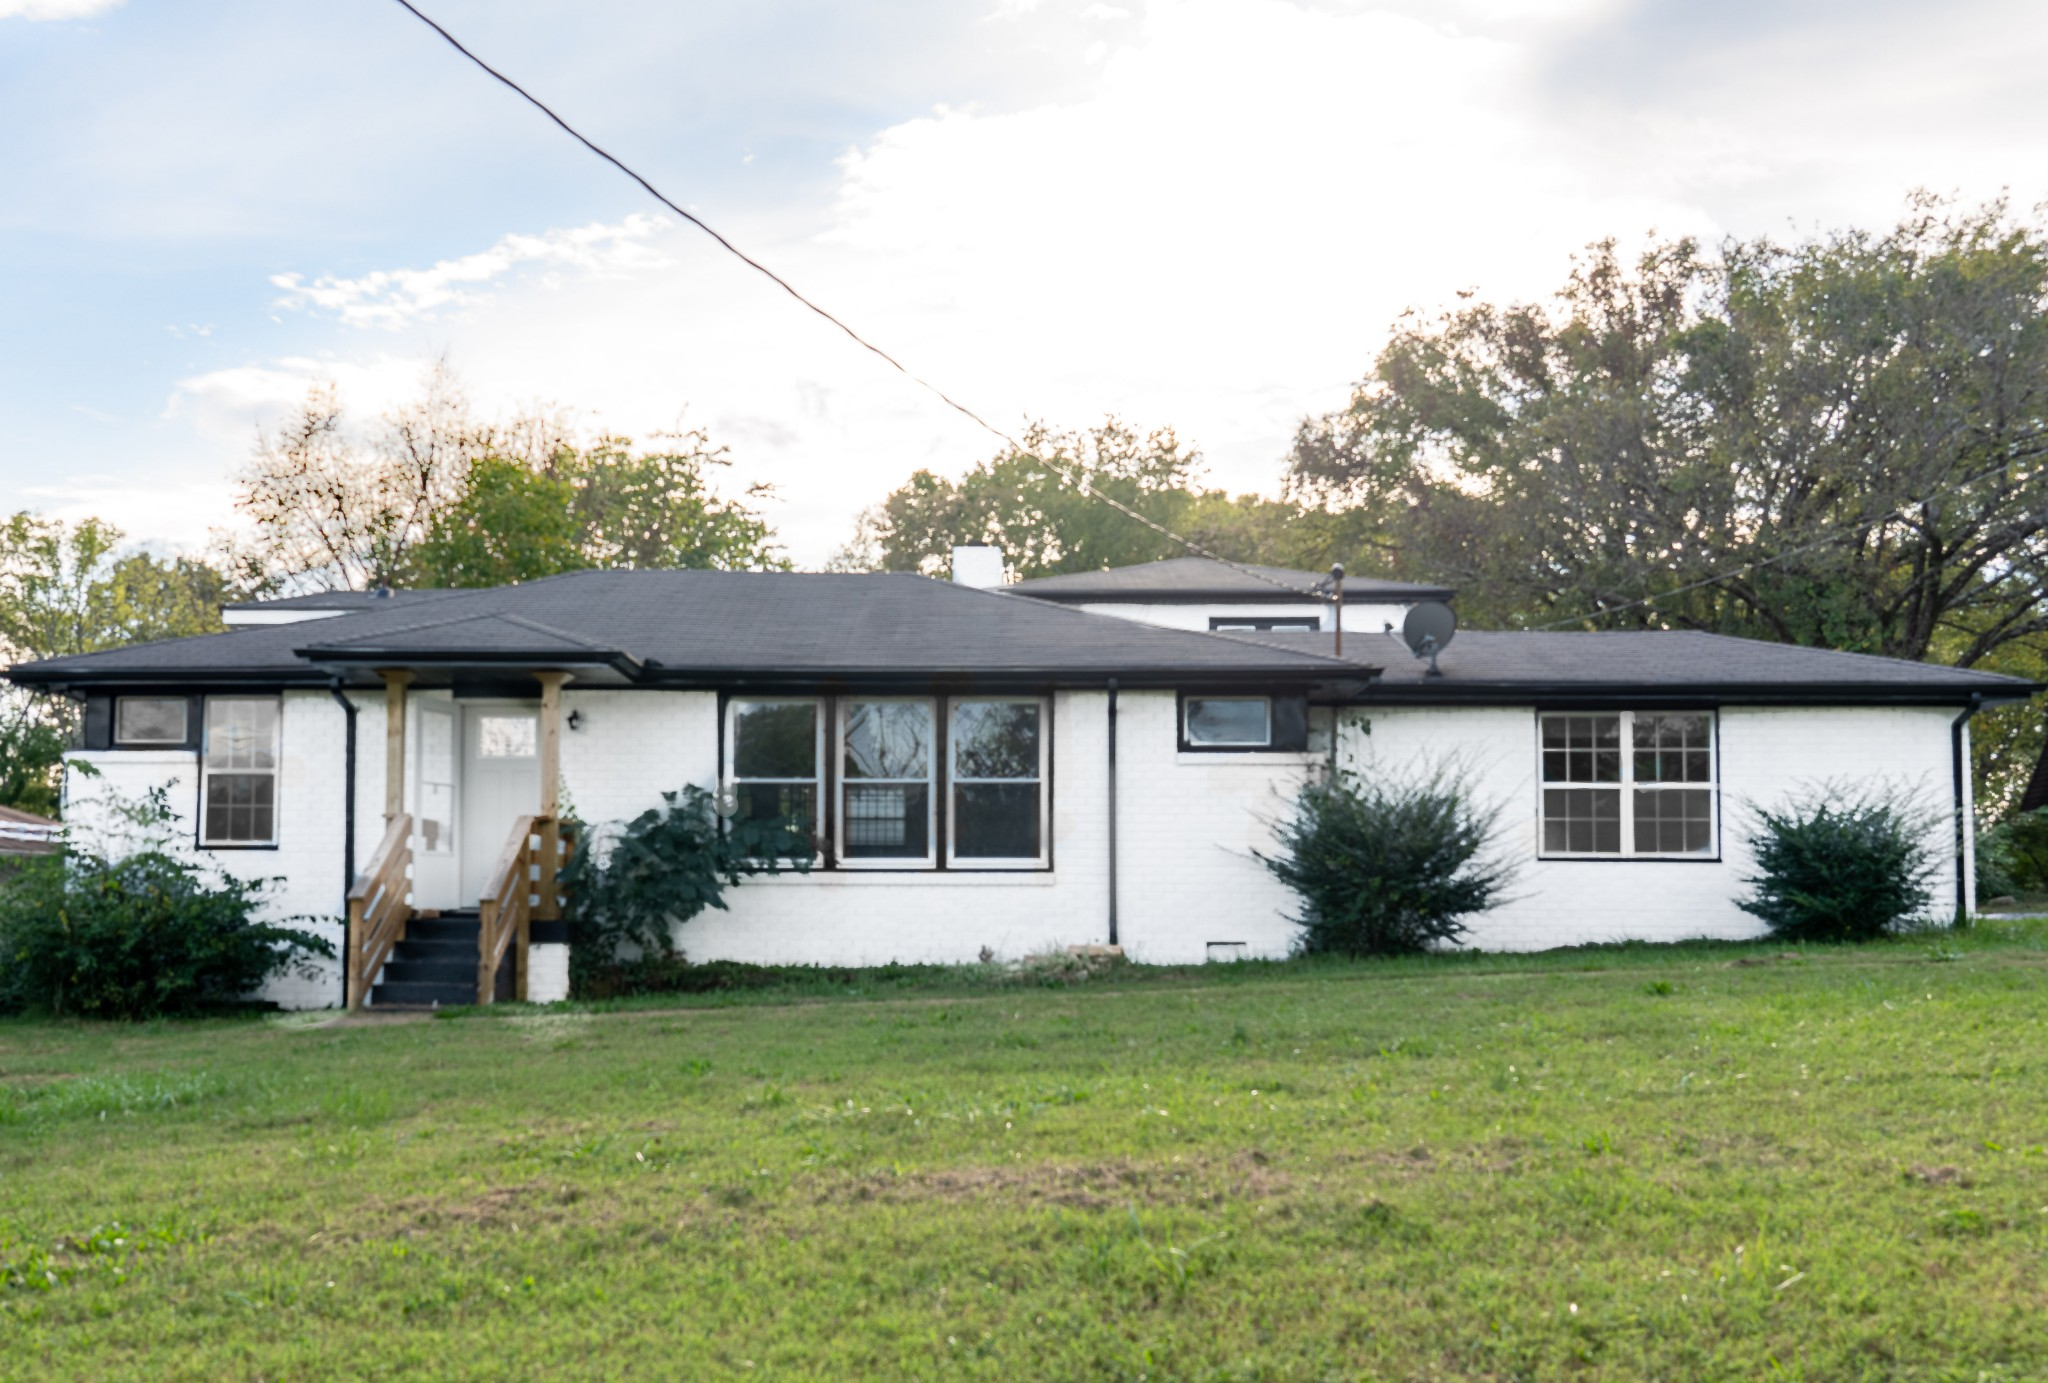 Conveniently located 10 minutes from Downtown. One level, all brick with open layout. An additional 1900 sqft, two story detached back house with 3 bedrooms, 2 full baths, kitchen, and living room. Perfect for airbnb.